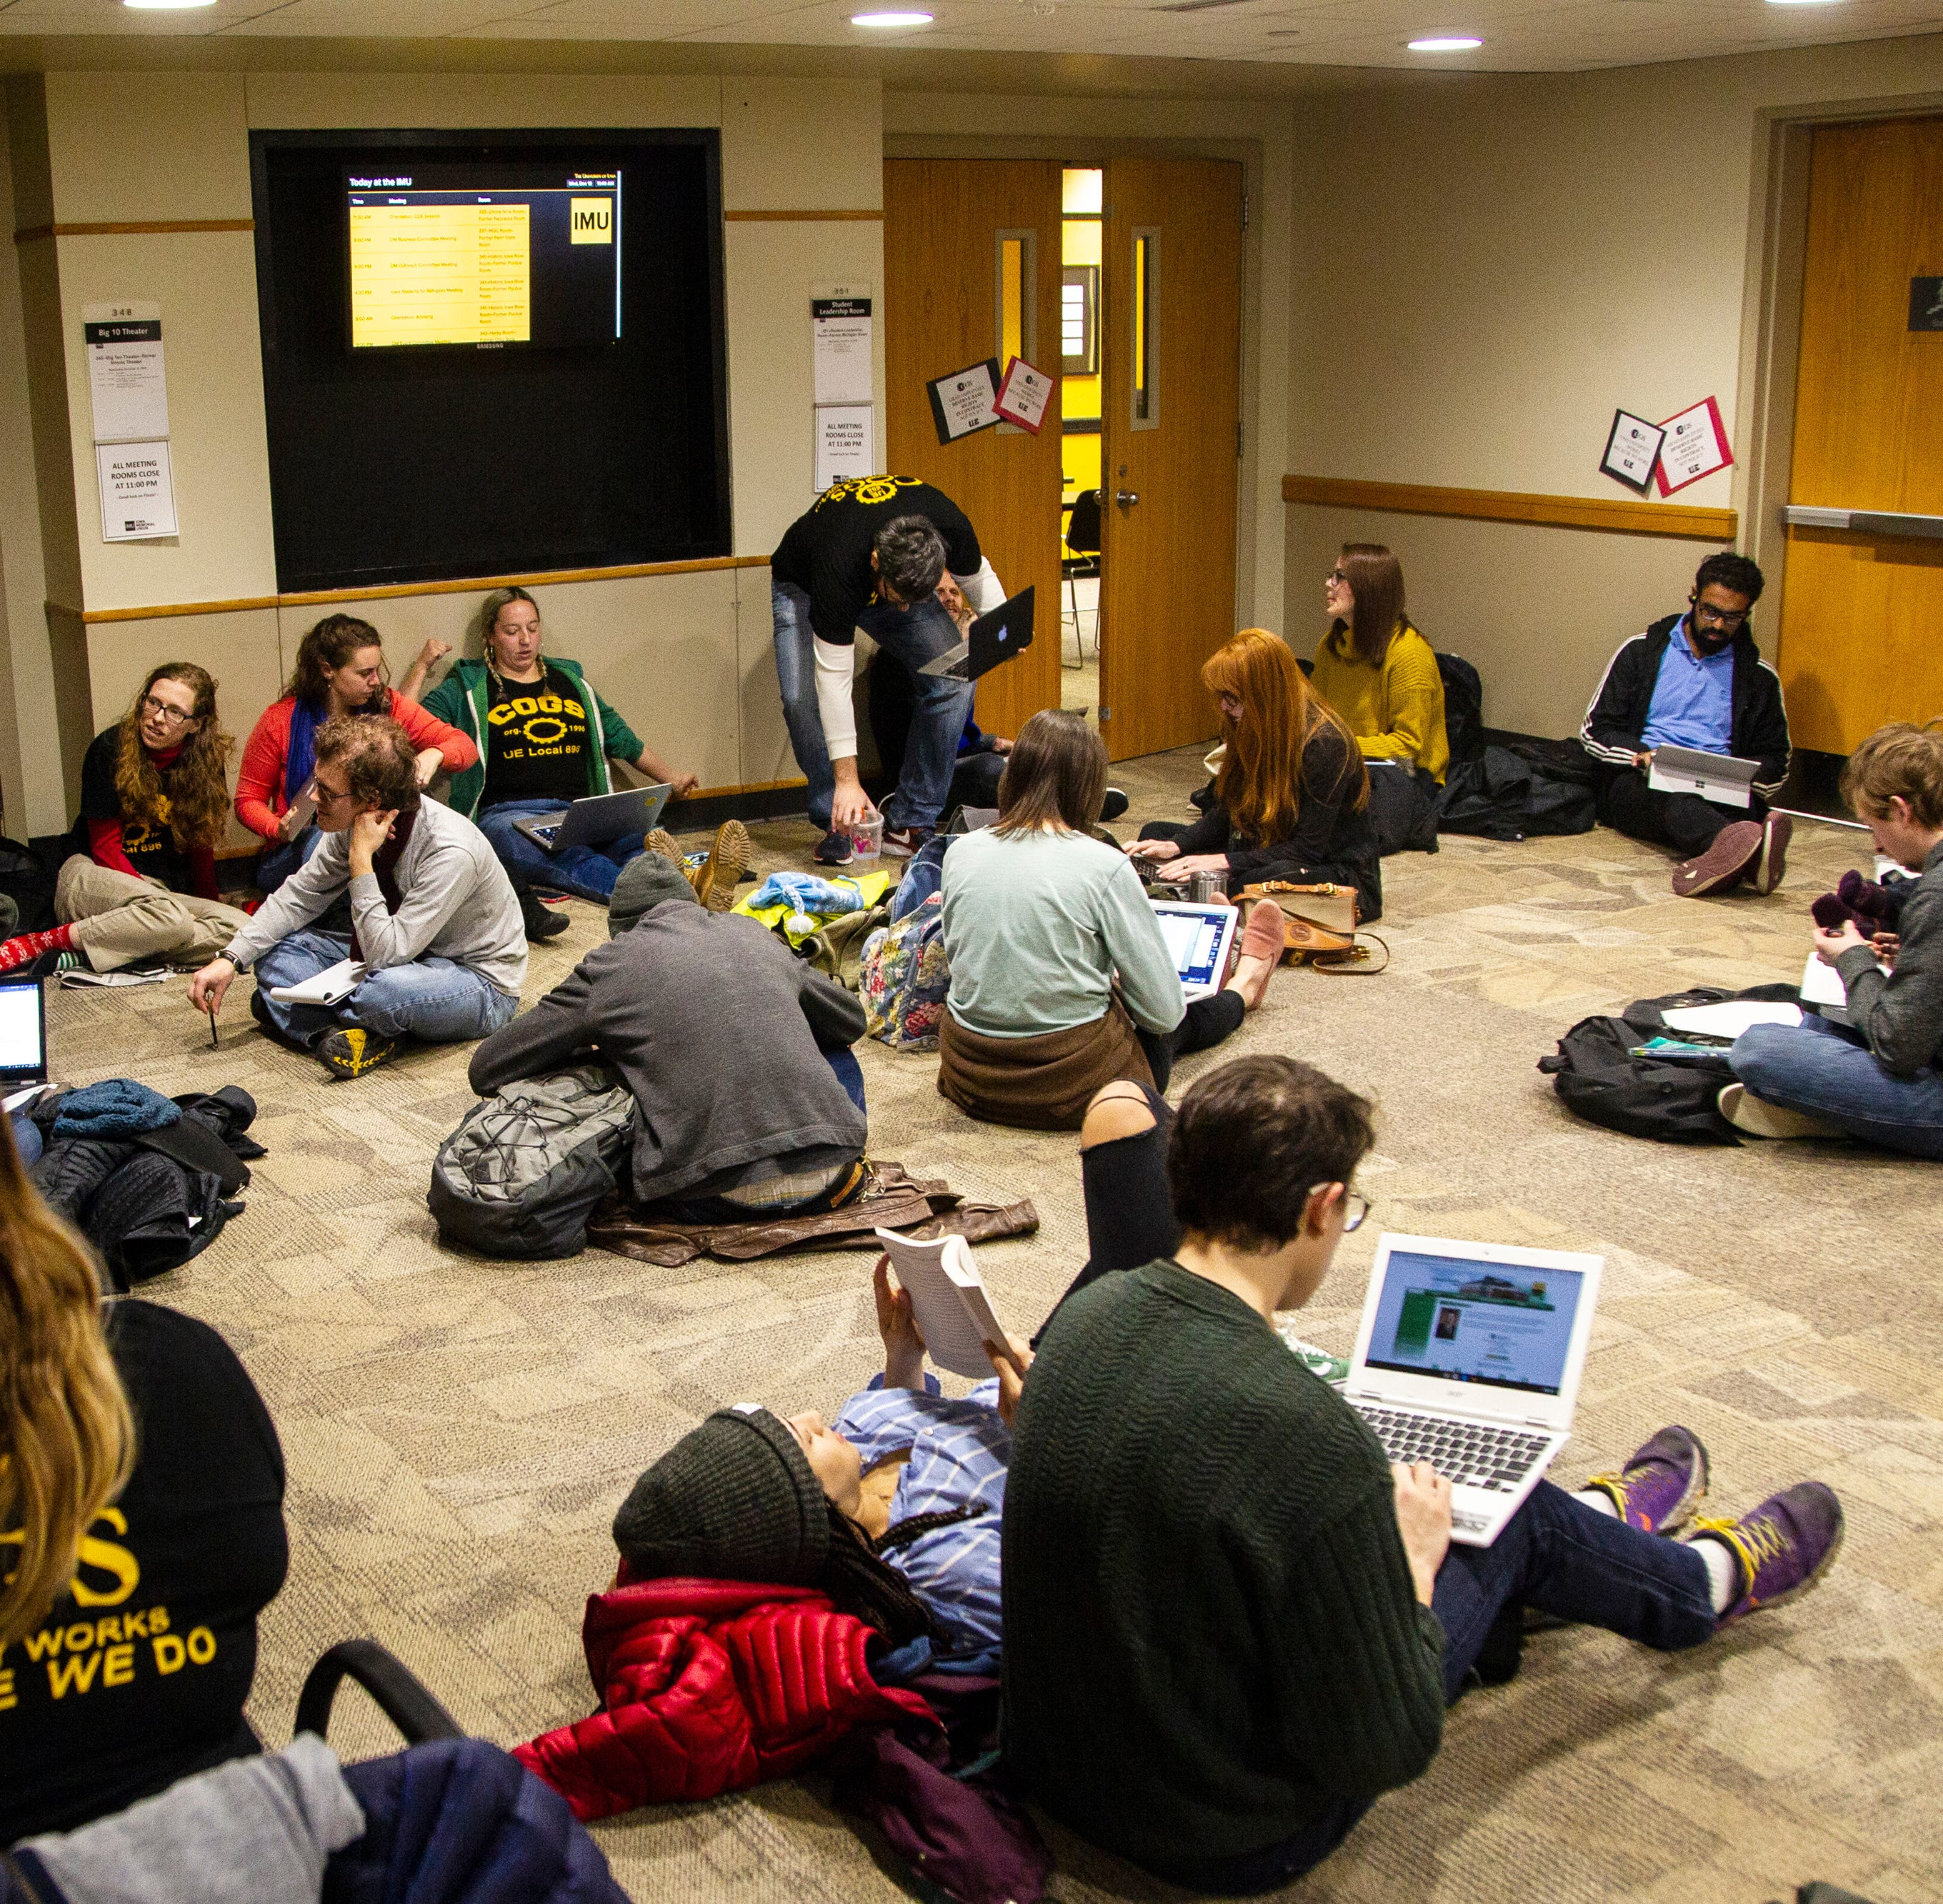 'Give and take' means something different to UI grad student union, Iowa regents